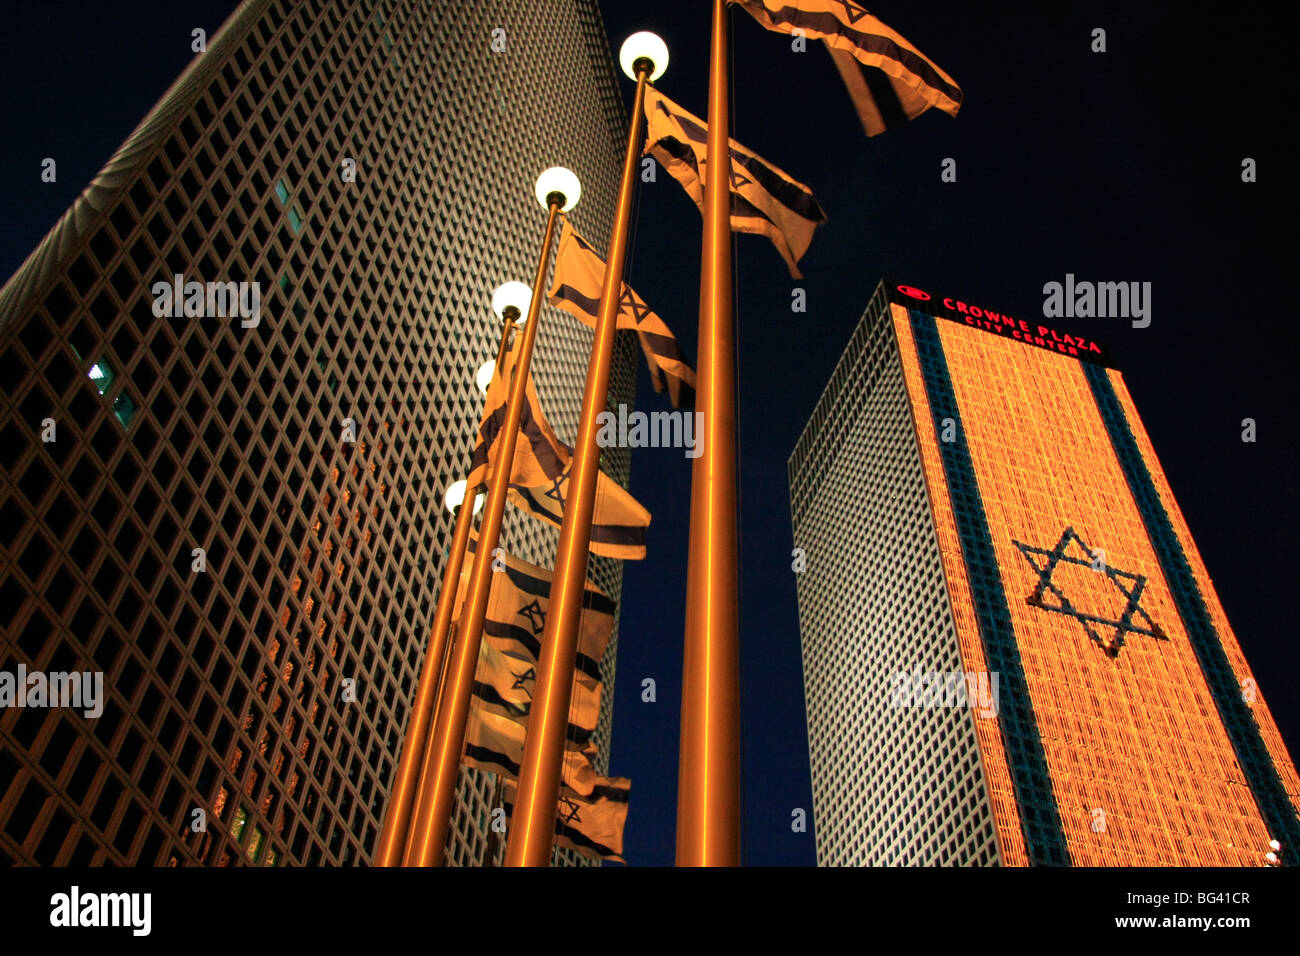 Israel, Tel Aviv, an illuminated Israeli flag at Azrieli Center on Independence day - Stock Image